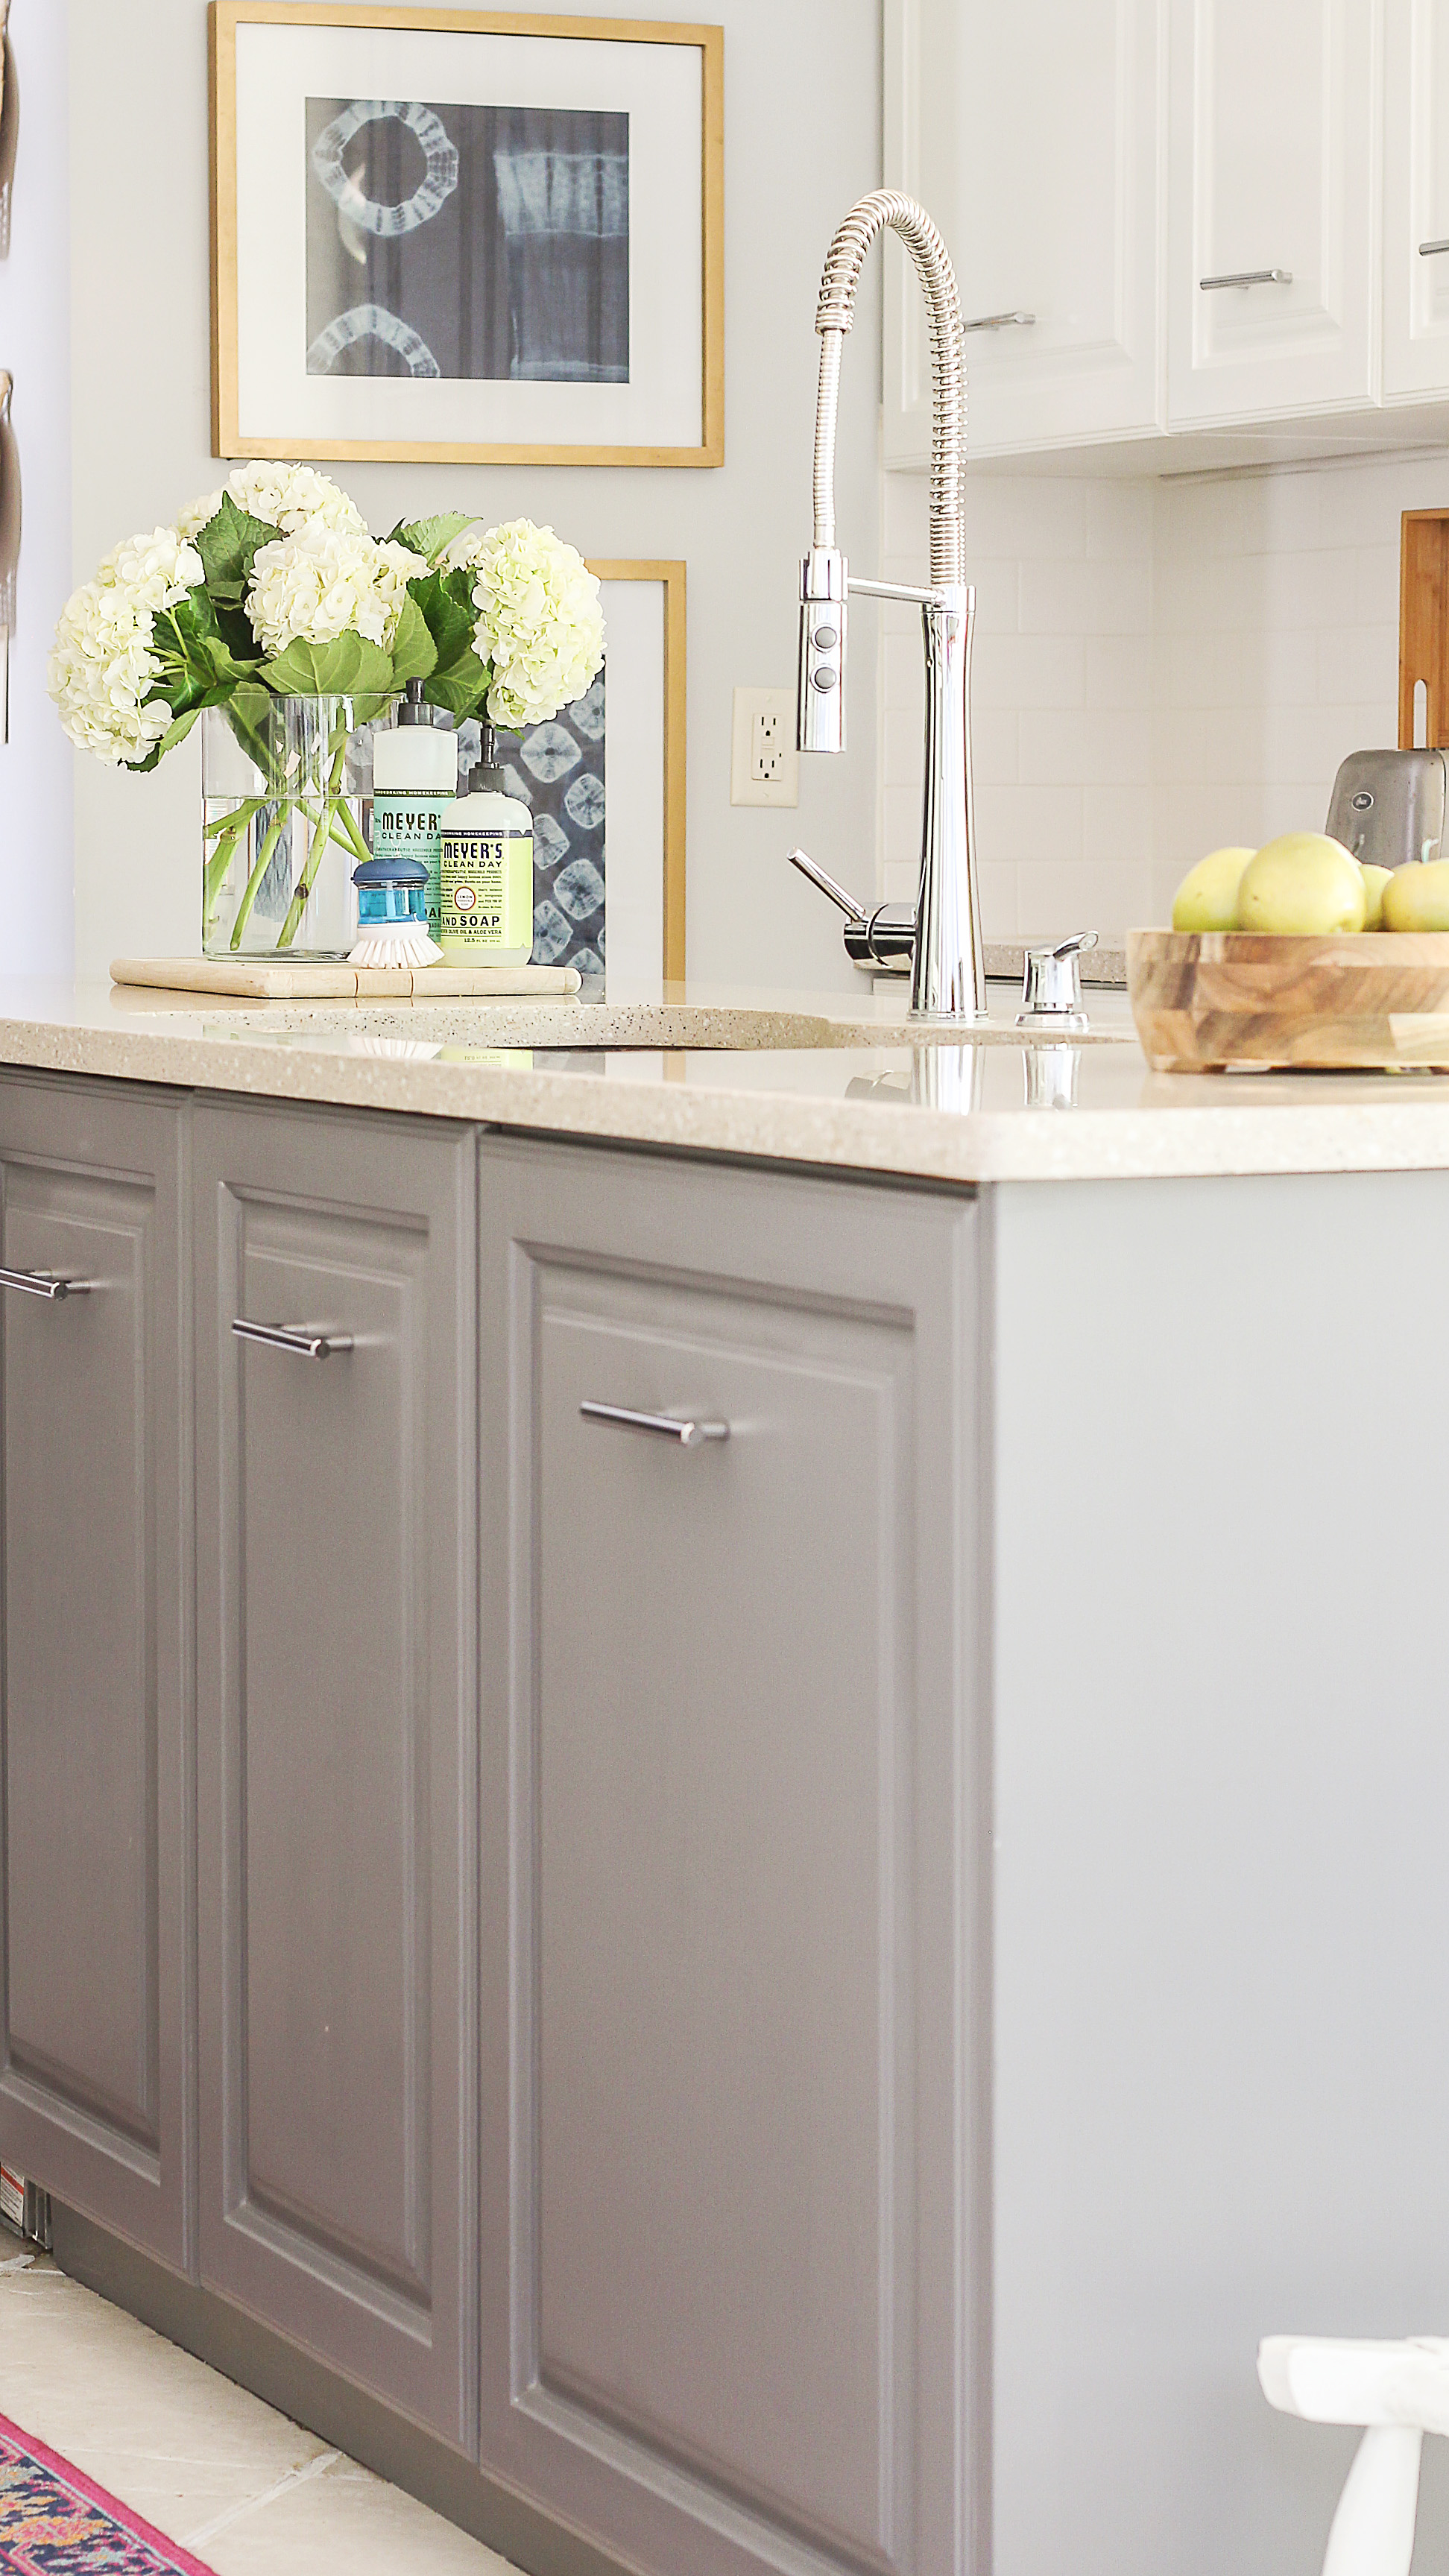 Images Of Painted Kitchen Cabinets Fastest Way To Paint Kitchen Cabinets The Ultimate Hack